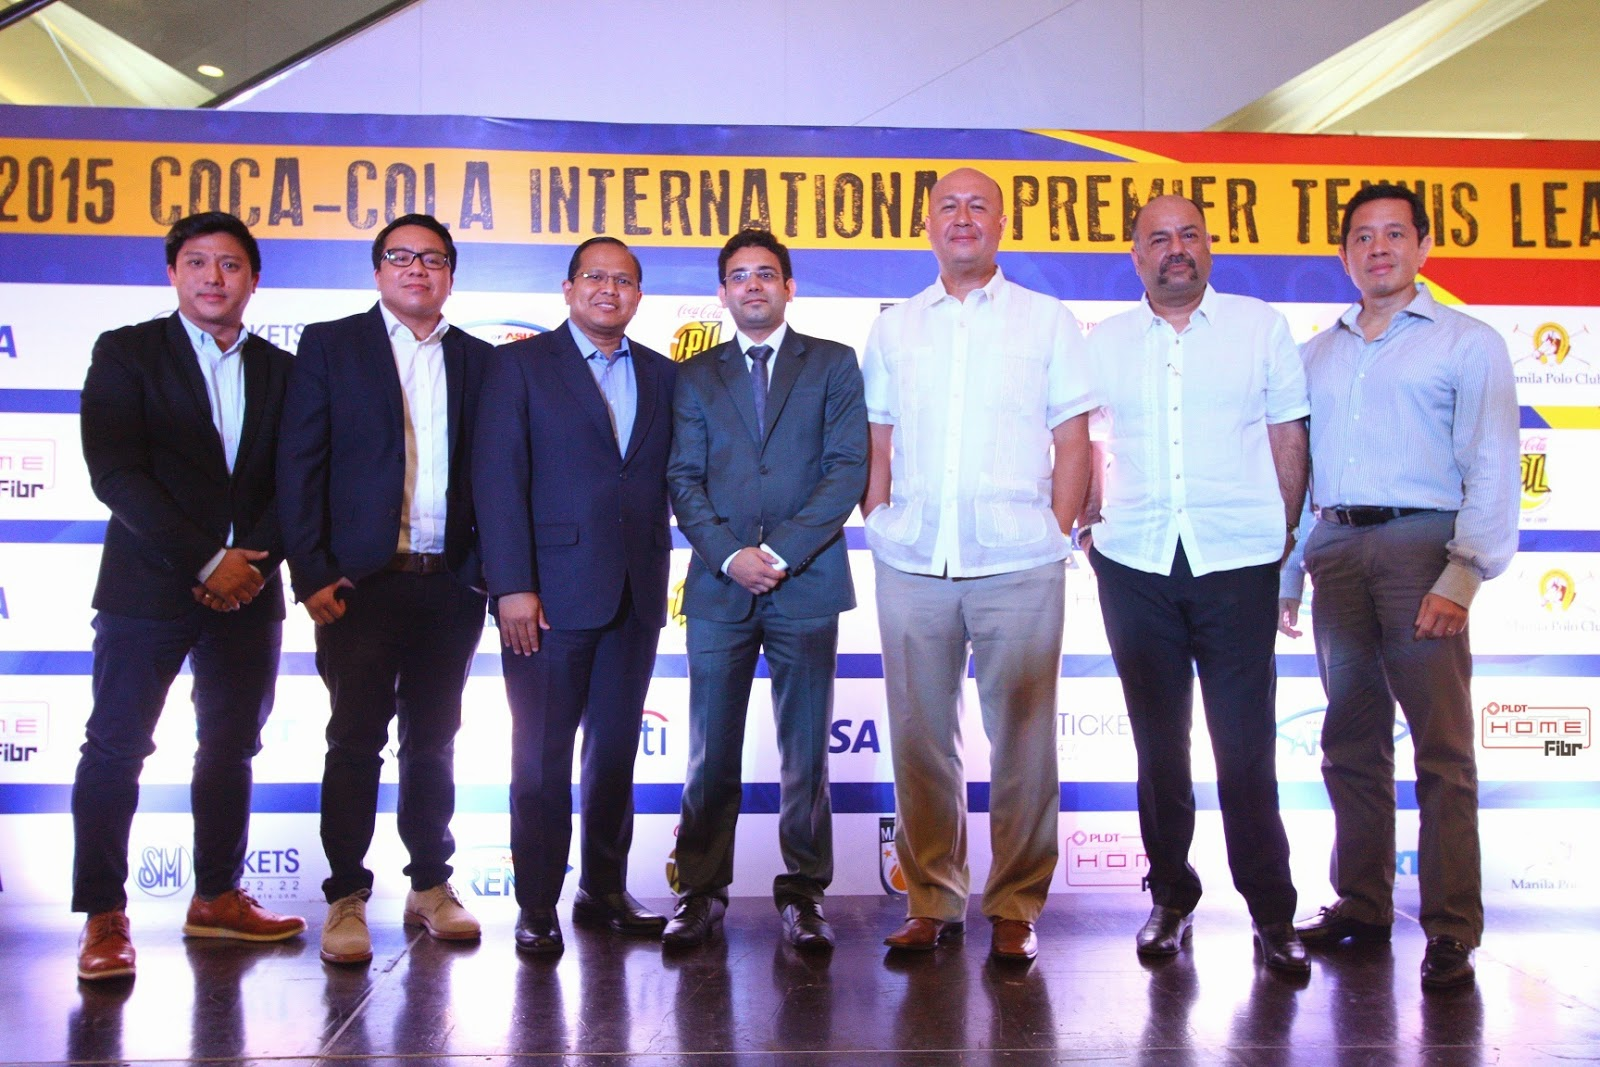 PLDT HOME Fibr presents the most prestigious league